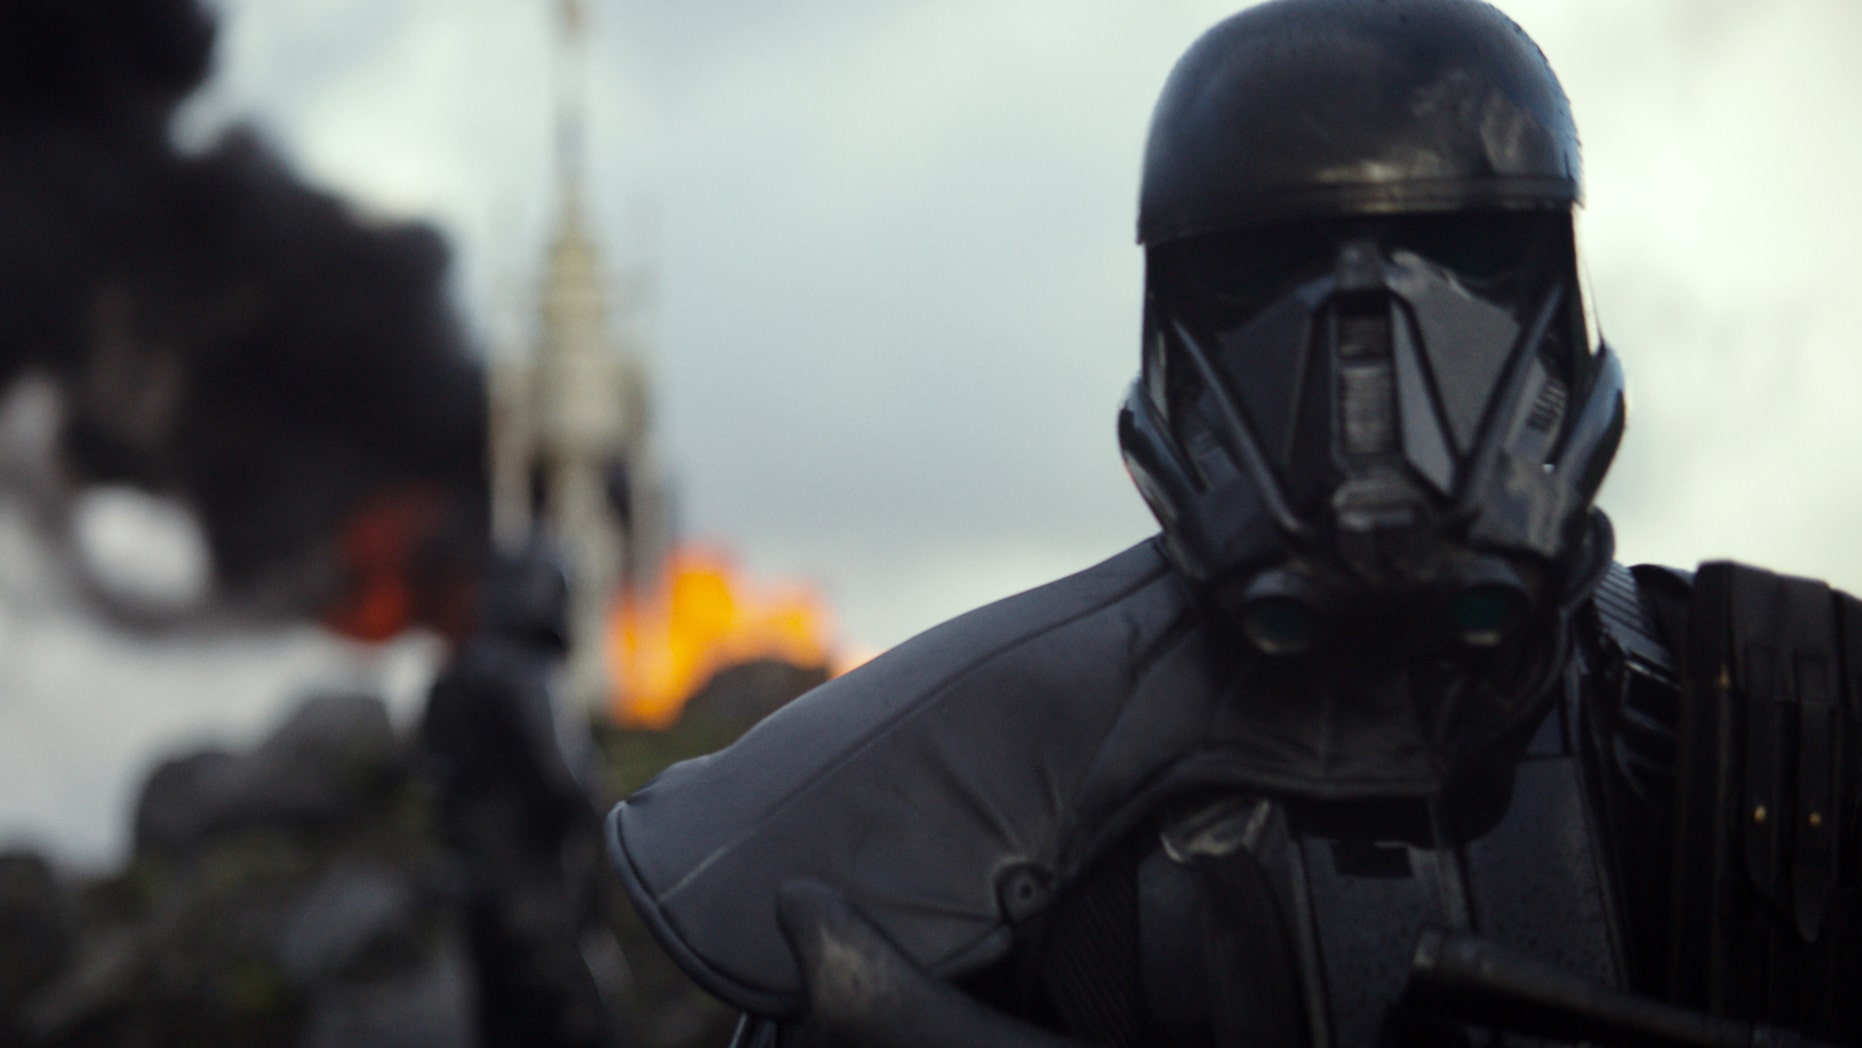 """This image released by Disney shows a scene from the upcoming film, """"Rogue One: A Star Wars Story."""" The world got a glimpse of Rogue One: A Star Wars Story in teaser trailer that debuted Thursday, April 7, 2016 on Good Morning America that introduces the rag tag rebels who unite to steal the plans for the Death Star, including The Theory of Everythings Felicity Jones. The film directed by Gareth Edwards also stars Diego Luna, Forest Whitaker and Ben Mendelsohn."""